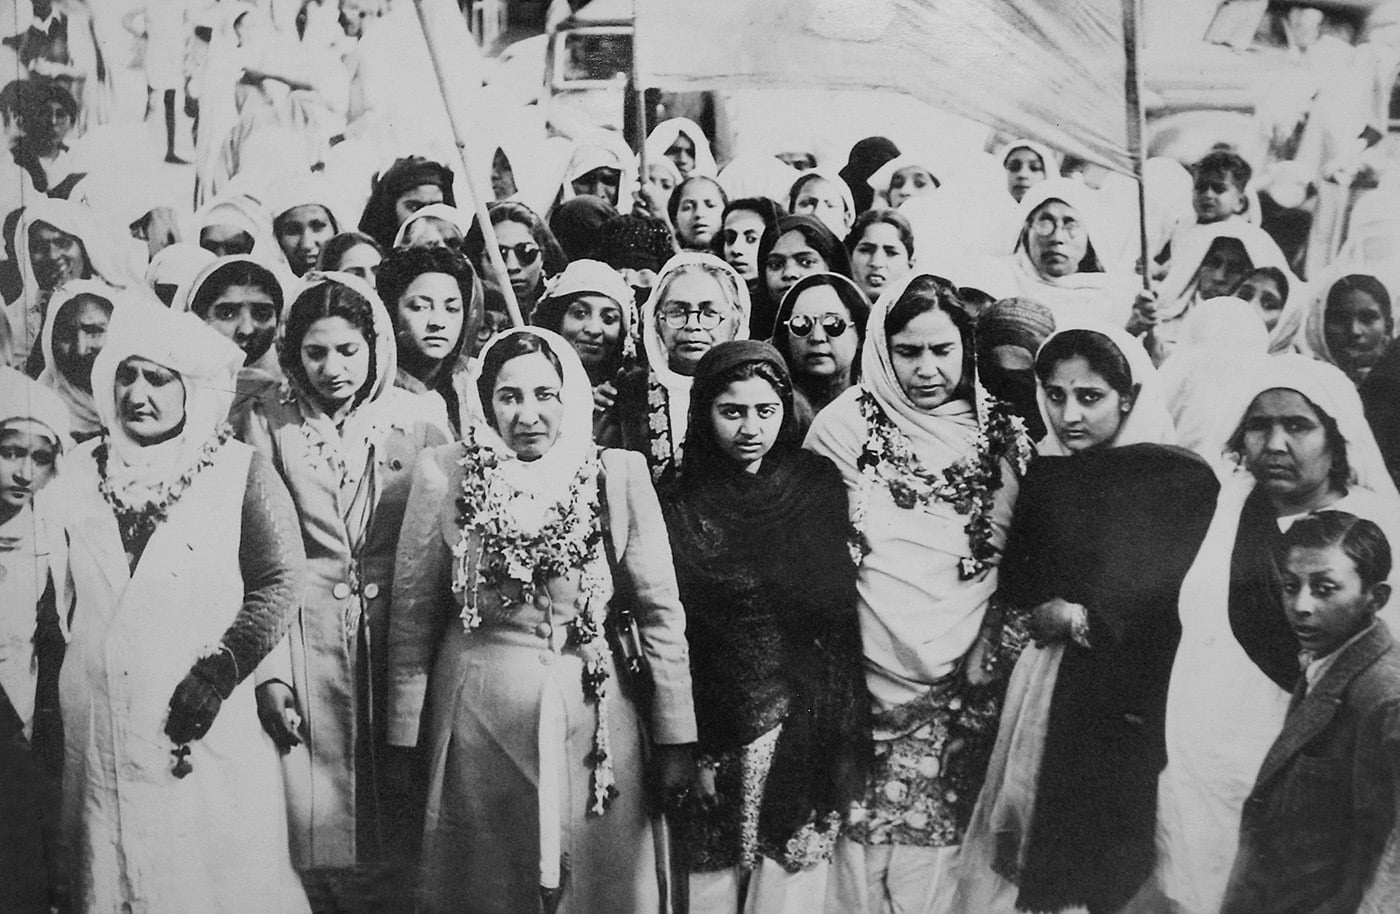 Women leaders of the Muslim League are released from Punjab Jail in March 1947. First row, from left to right: Begum Nasira Kiani, Begum Jahanara Shah Nawaz; second row (behind Begum Shah Nawaz, left to right): Miss Mumtaz Shah Nawaz, Fatima Begum, Dr Hassan Ara Begum and Begum Kamal-ud-din. Begum Salma Tasadduque Hussain stands behind Miss Shah Nawaz. — Courtesy Lahore Museum Archives